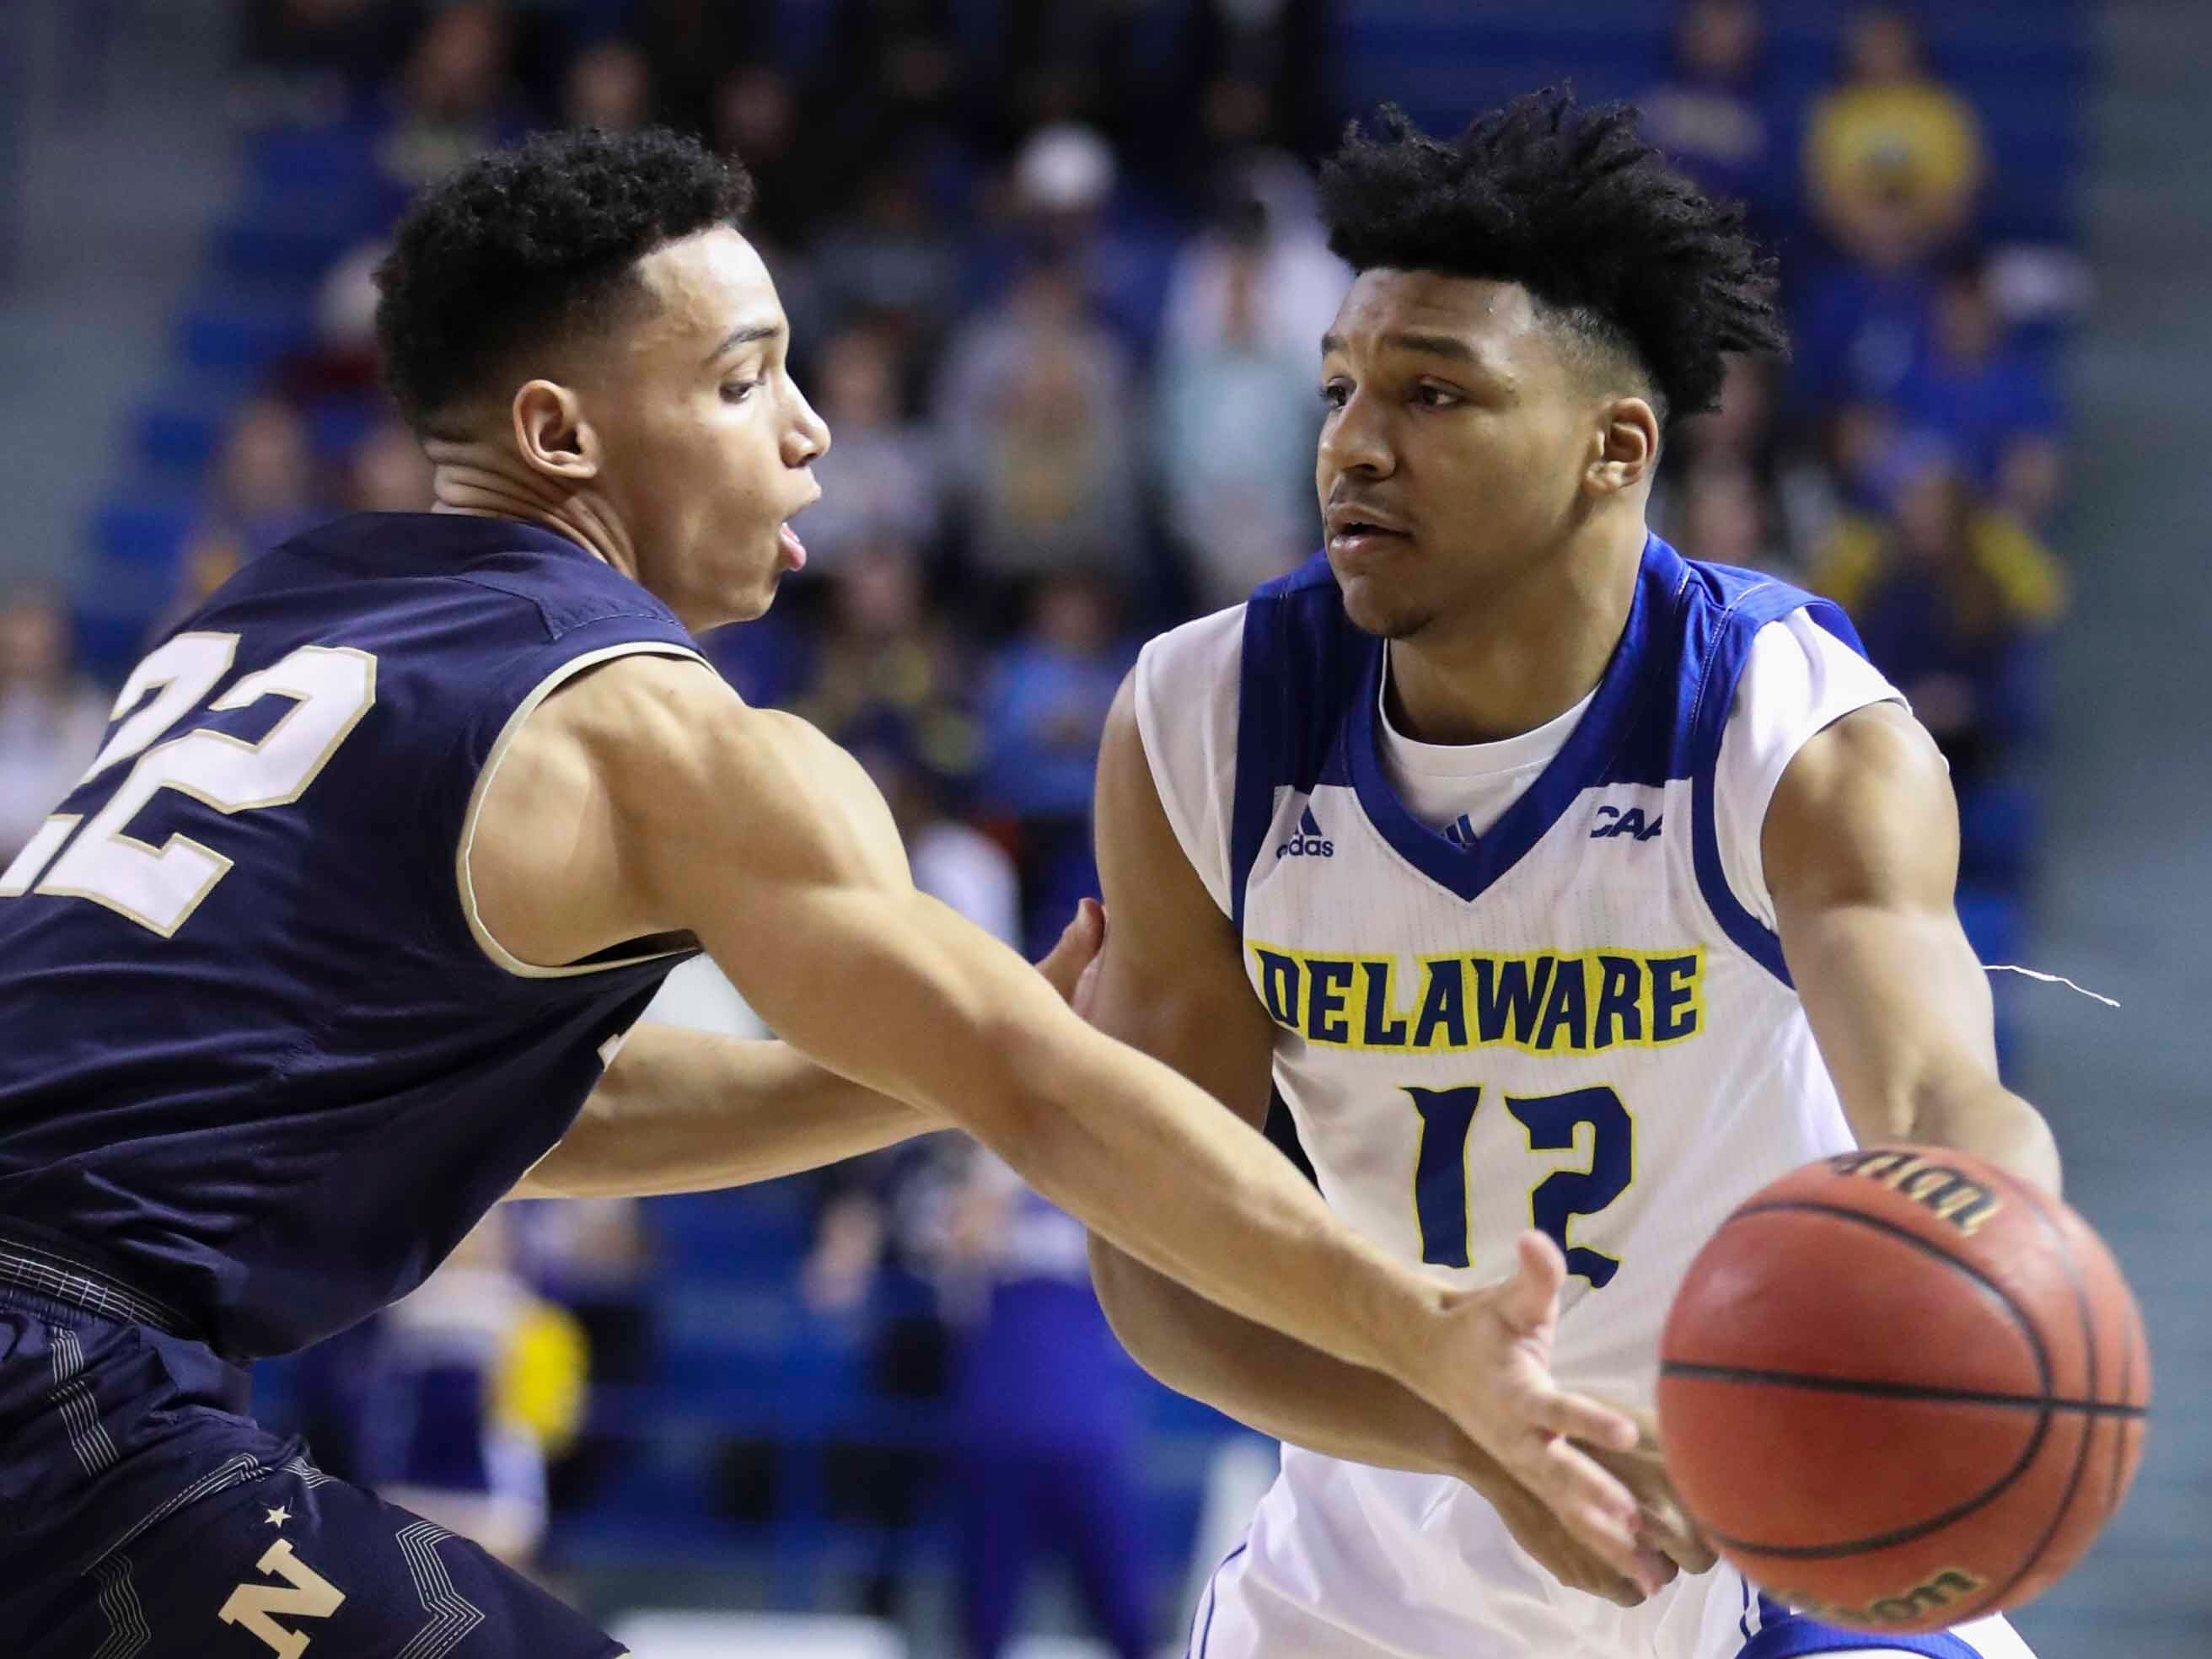 Navy's Cam Davis defends against Delaware's Ithiel Horton in the first half at the Bob Carpenter Center Wednesday.